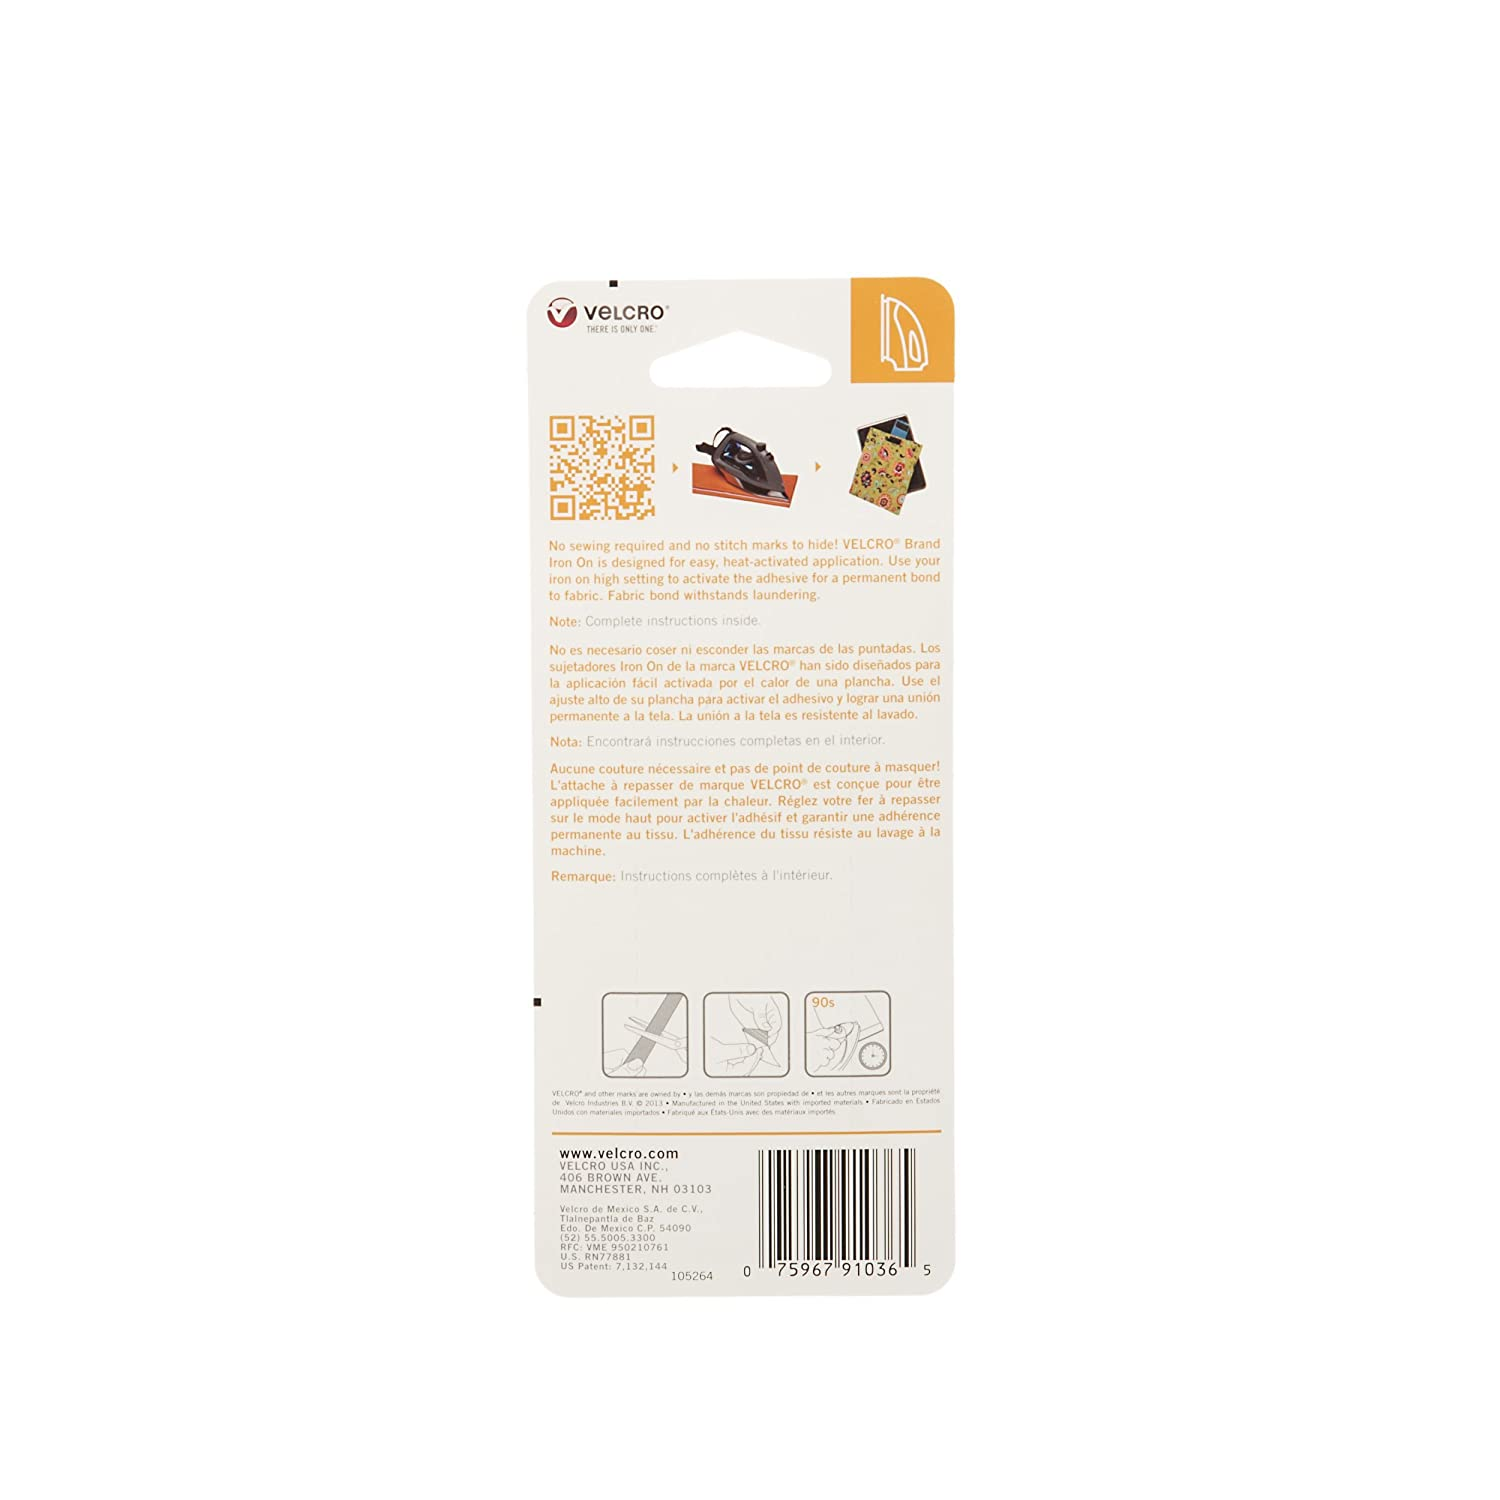 Amazon.com : VELCRO Brand For Fabrics   Iron On Tape for Alterations and Hemming   No Sewing or Gluing   Heat Activated for Thicker Fabrics   Cut-to-Length ...